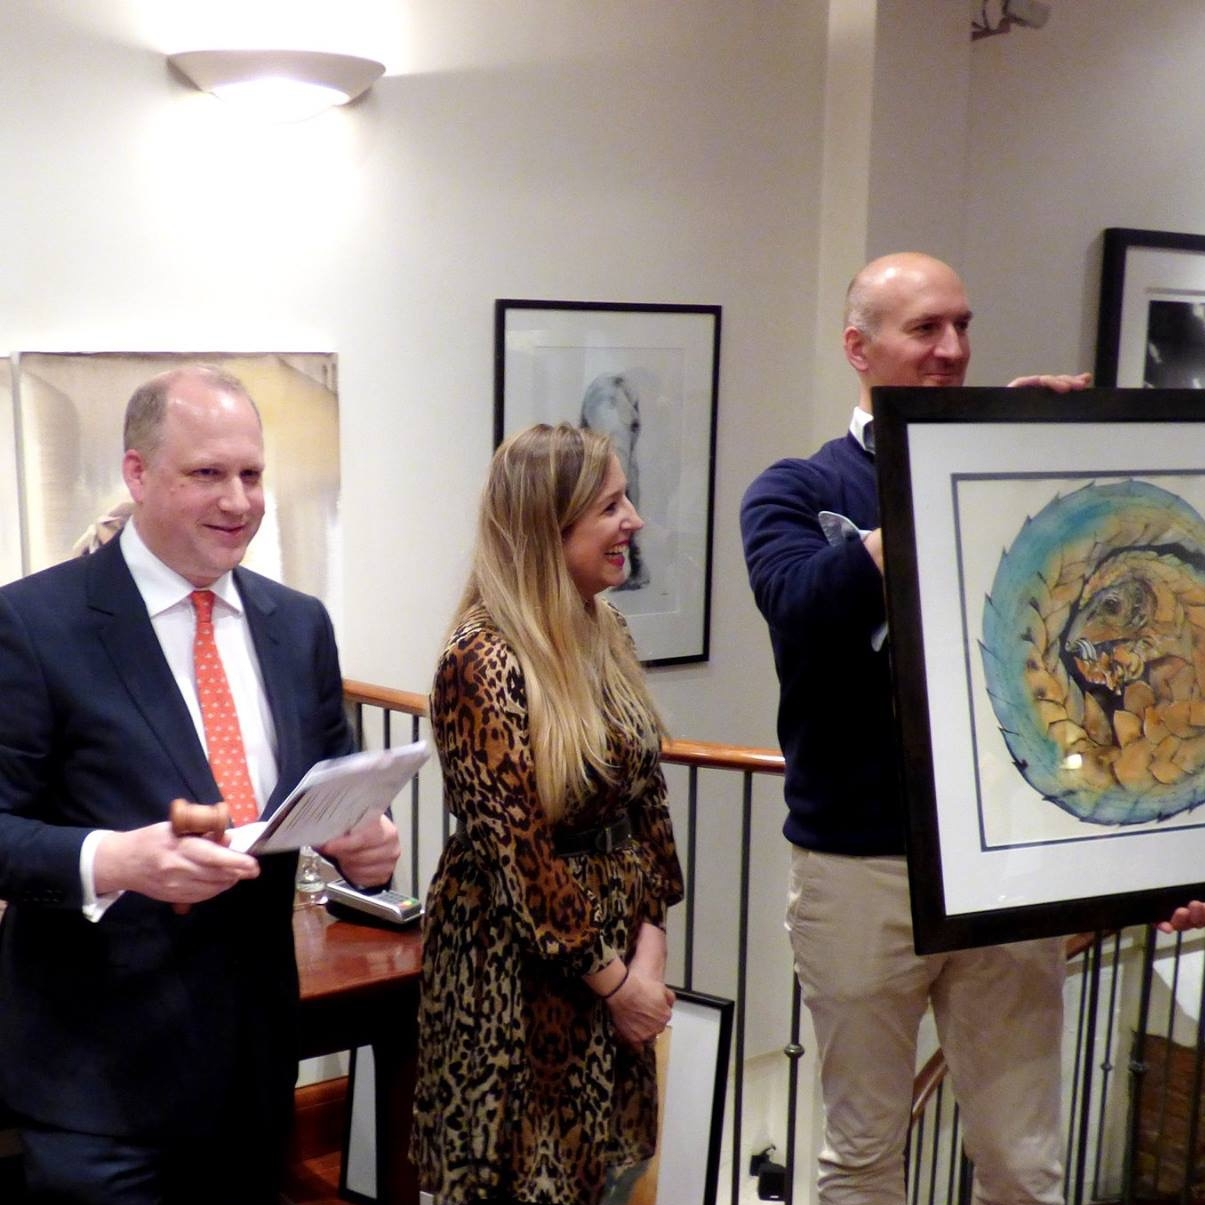 At a charity auction with Sotheby's Richard Fattorini, raising funds for pangolins, at Patrick Mavros